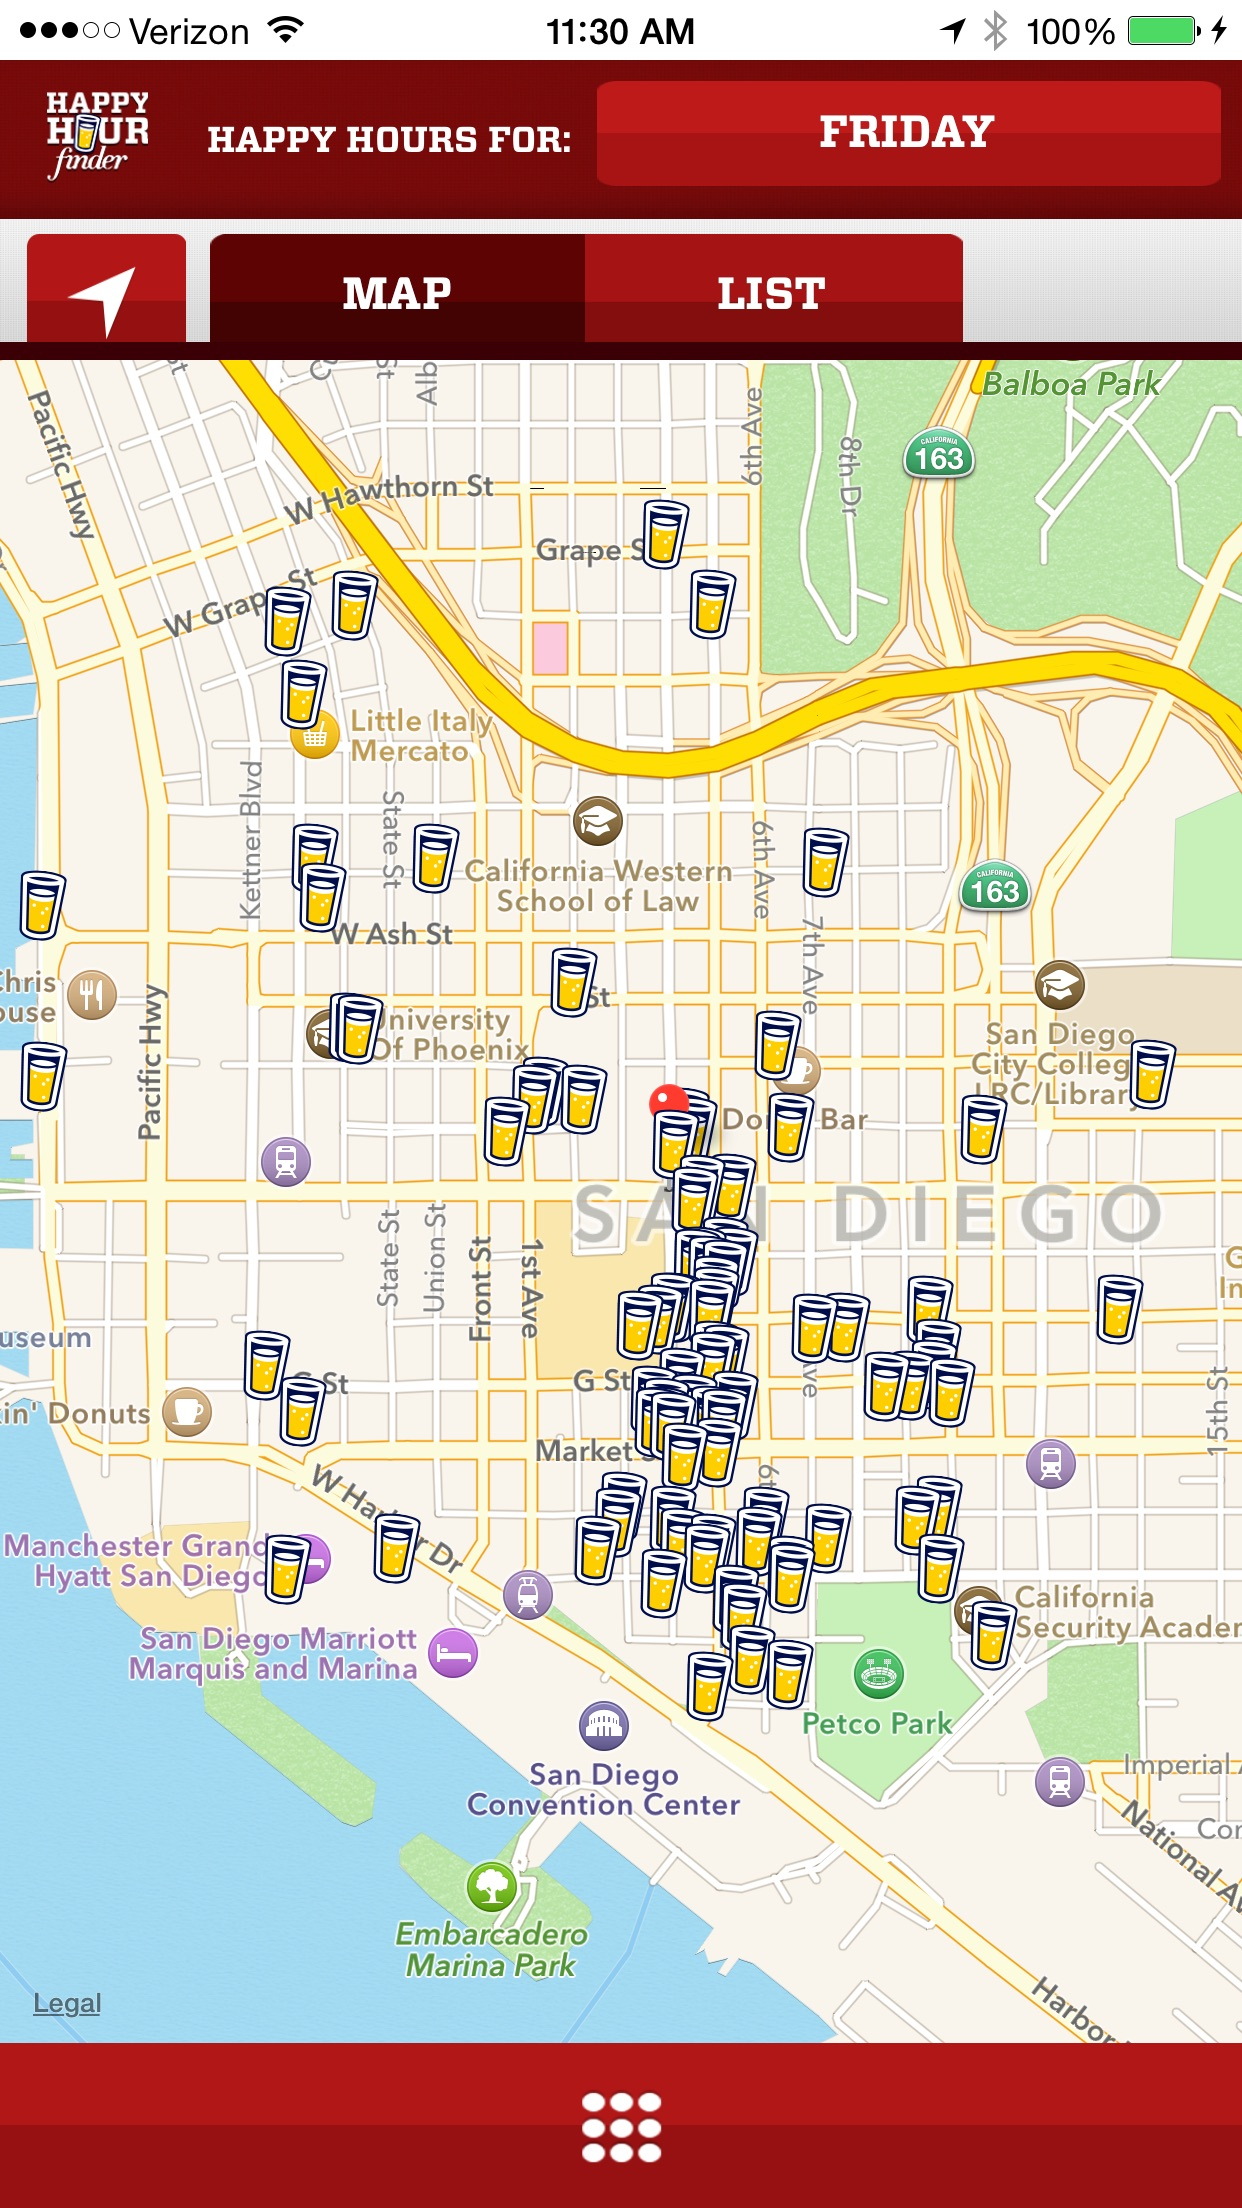 Happy Hour Finder - Find Local Food and Drink Deals Screenshot